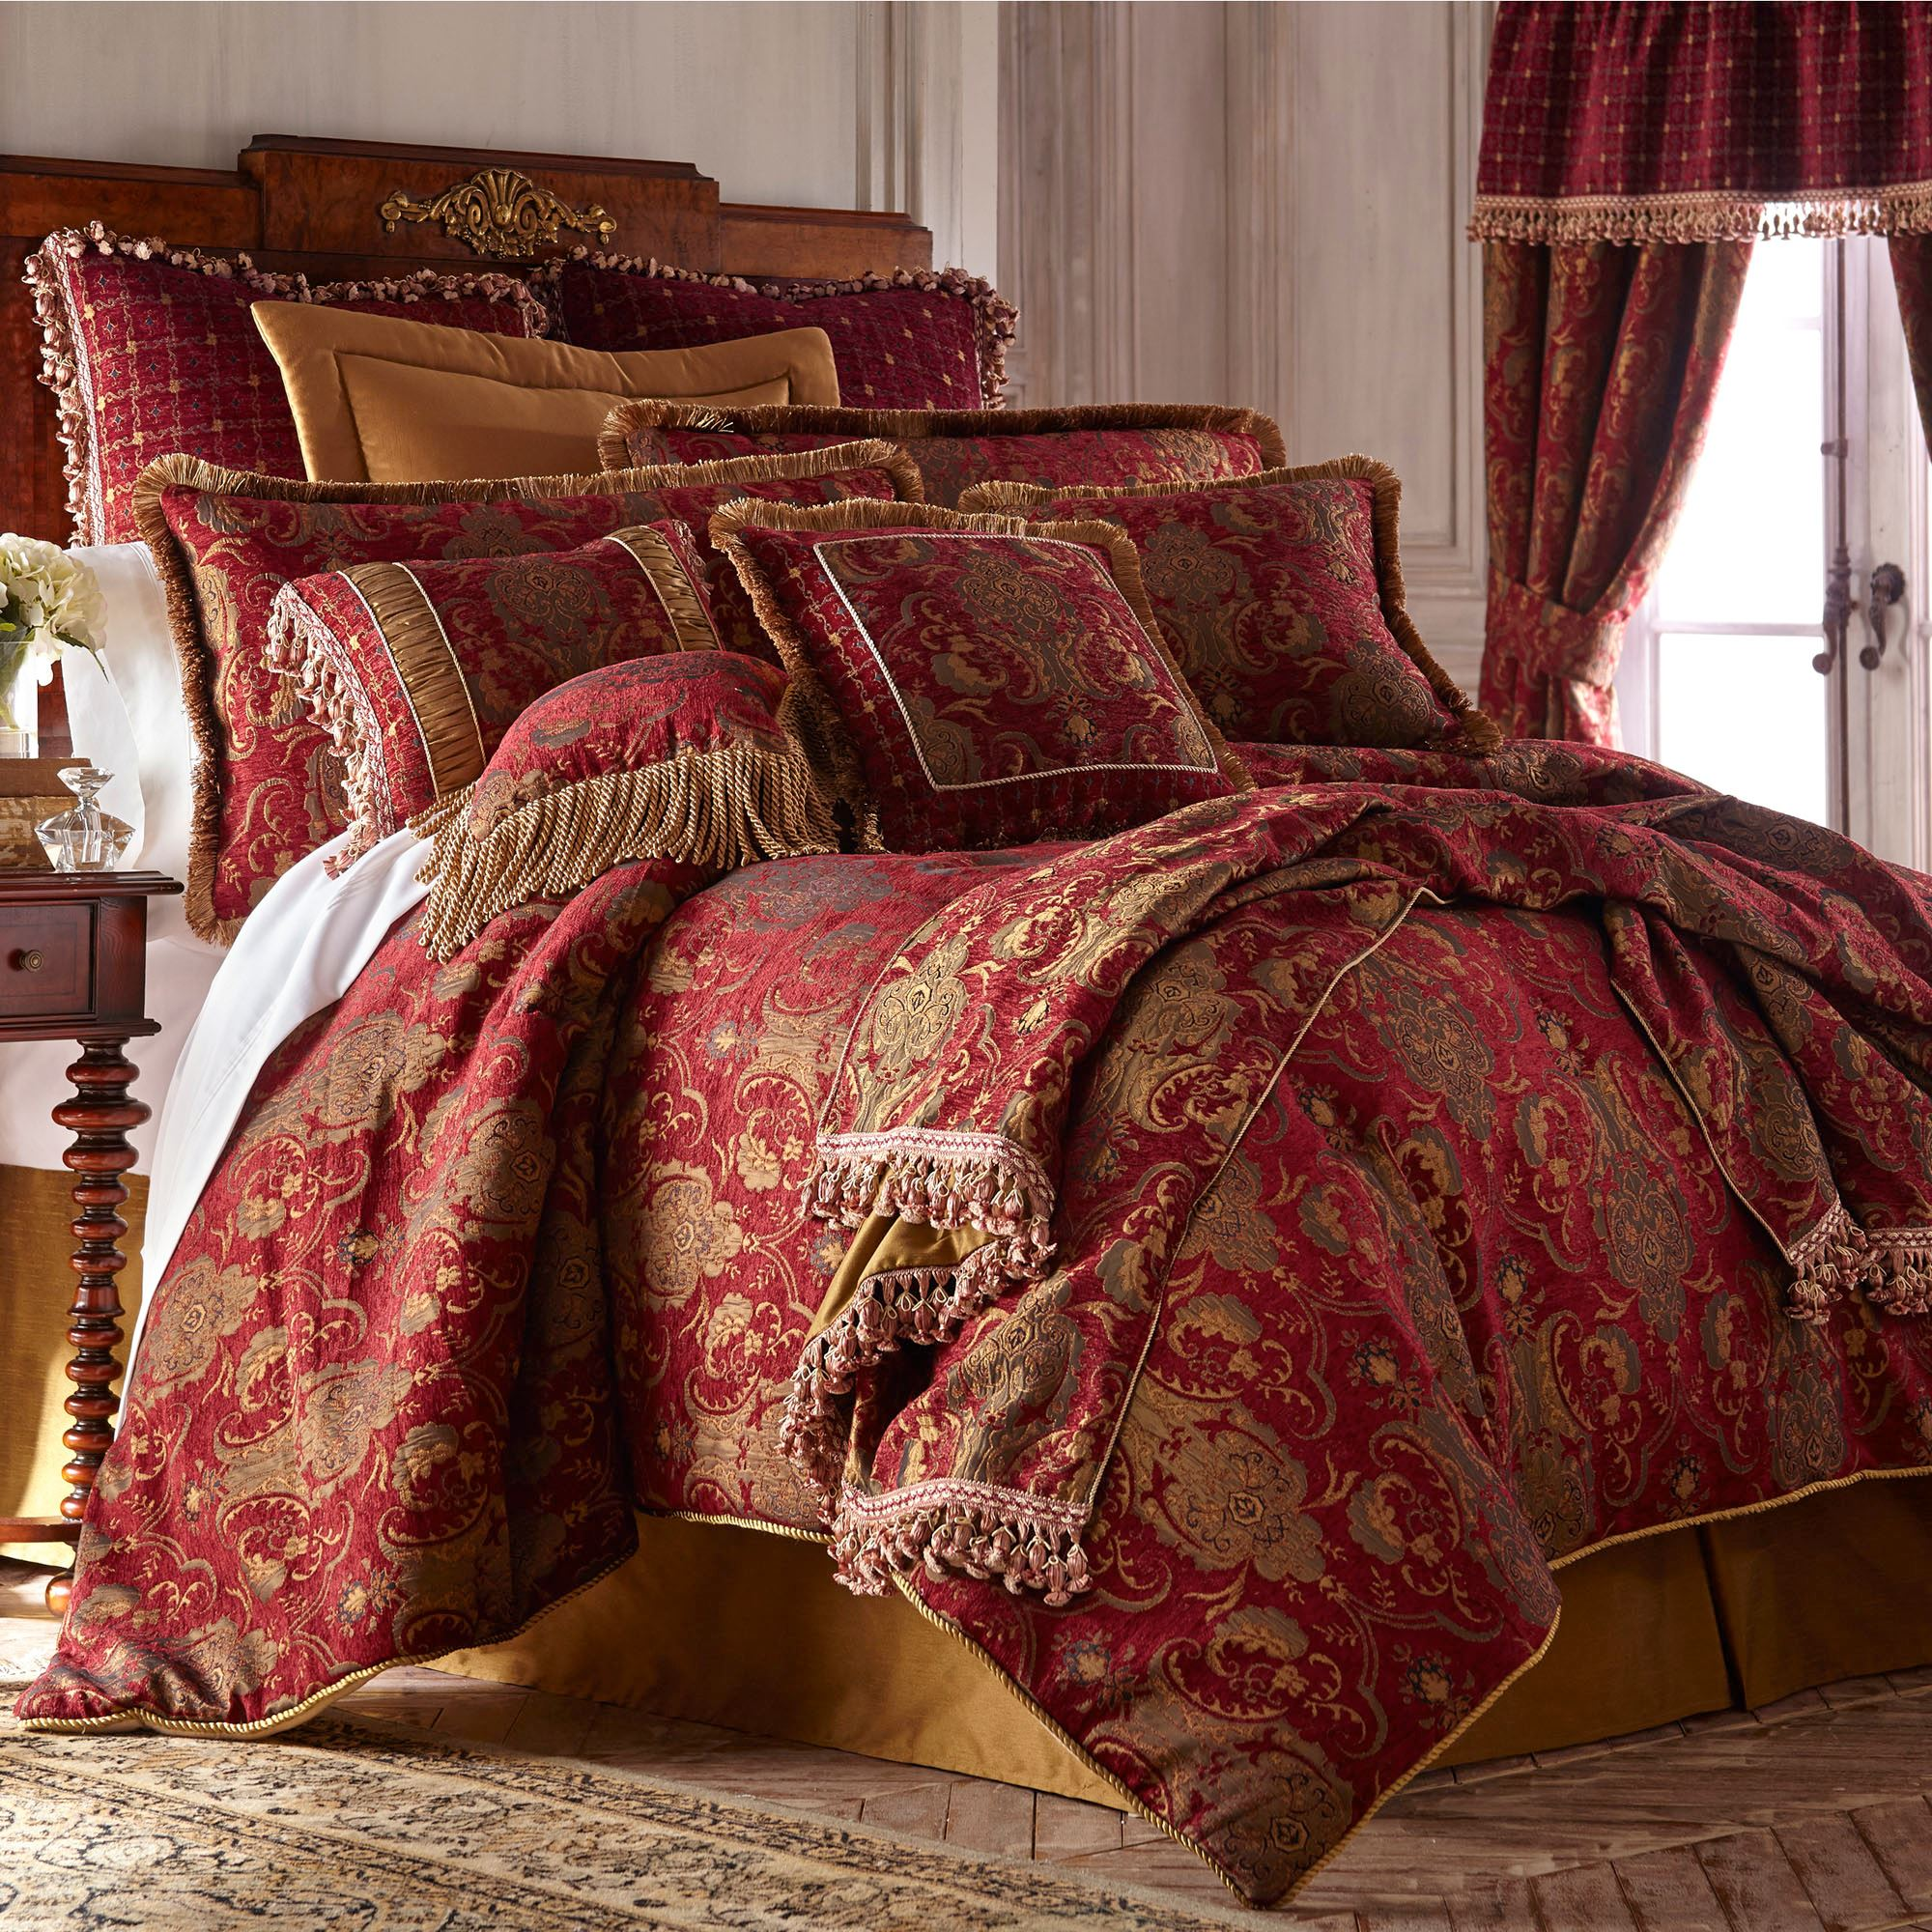 China Art Ruby Red Asian Inspired Comforter Bedding